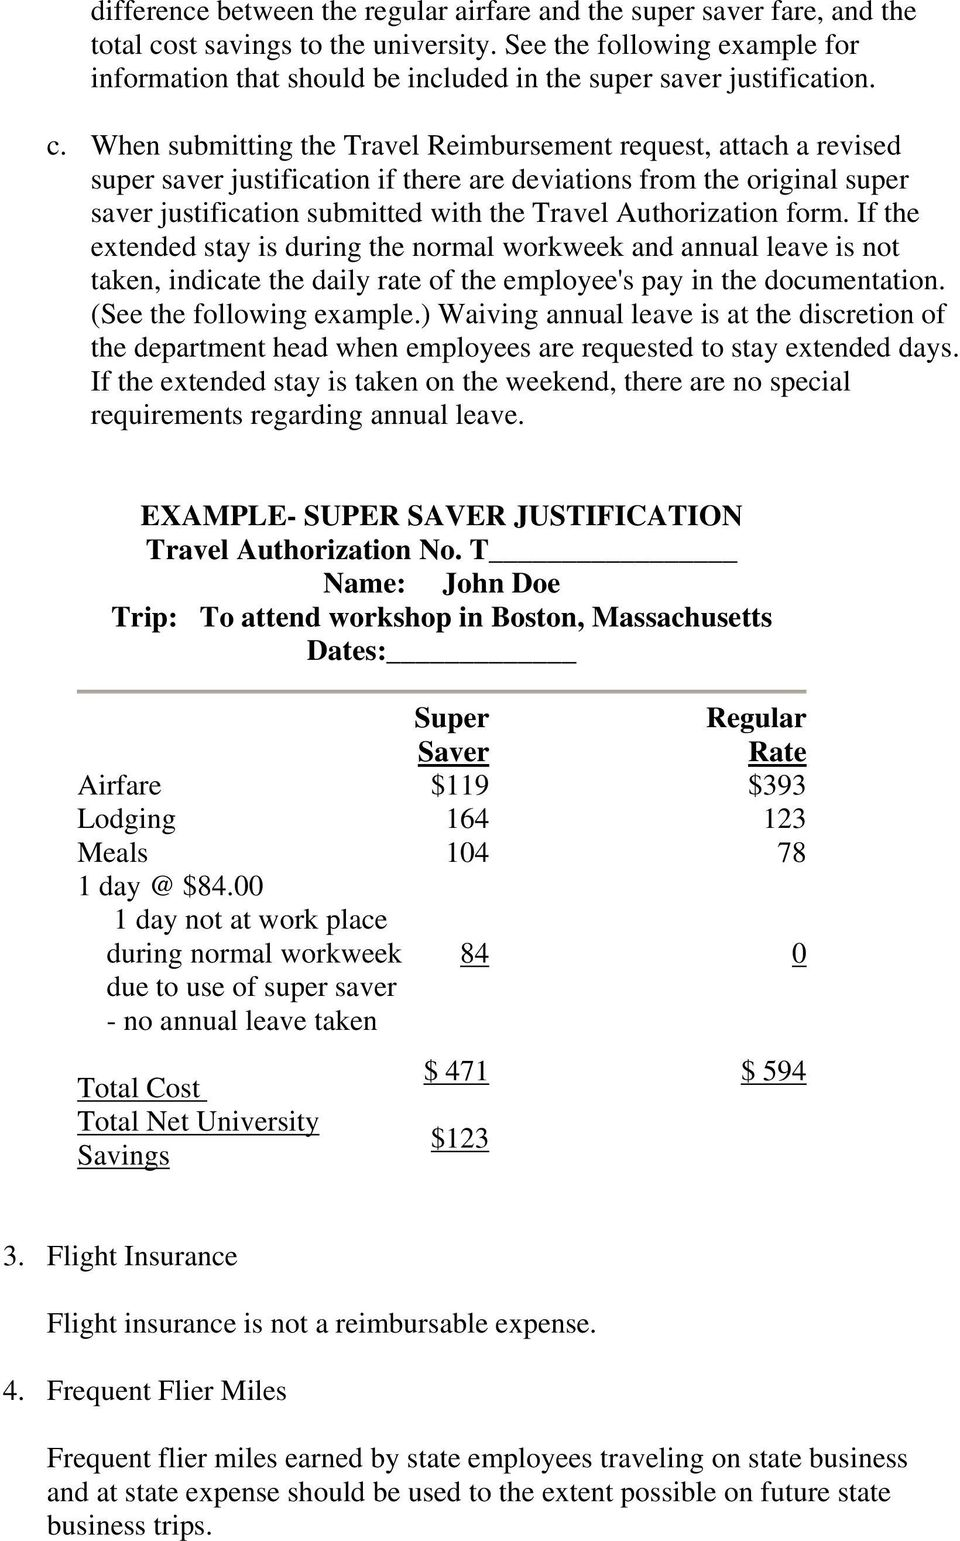 When submitting the Travel Reimbursement request, attach a revised super saver justification if there are deviations from the original super saver justification submitted with the Travel